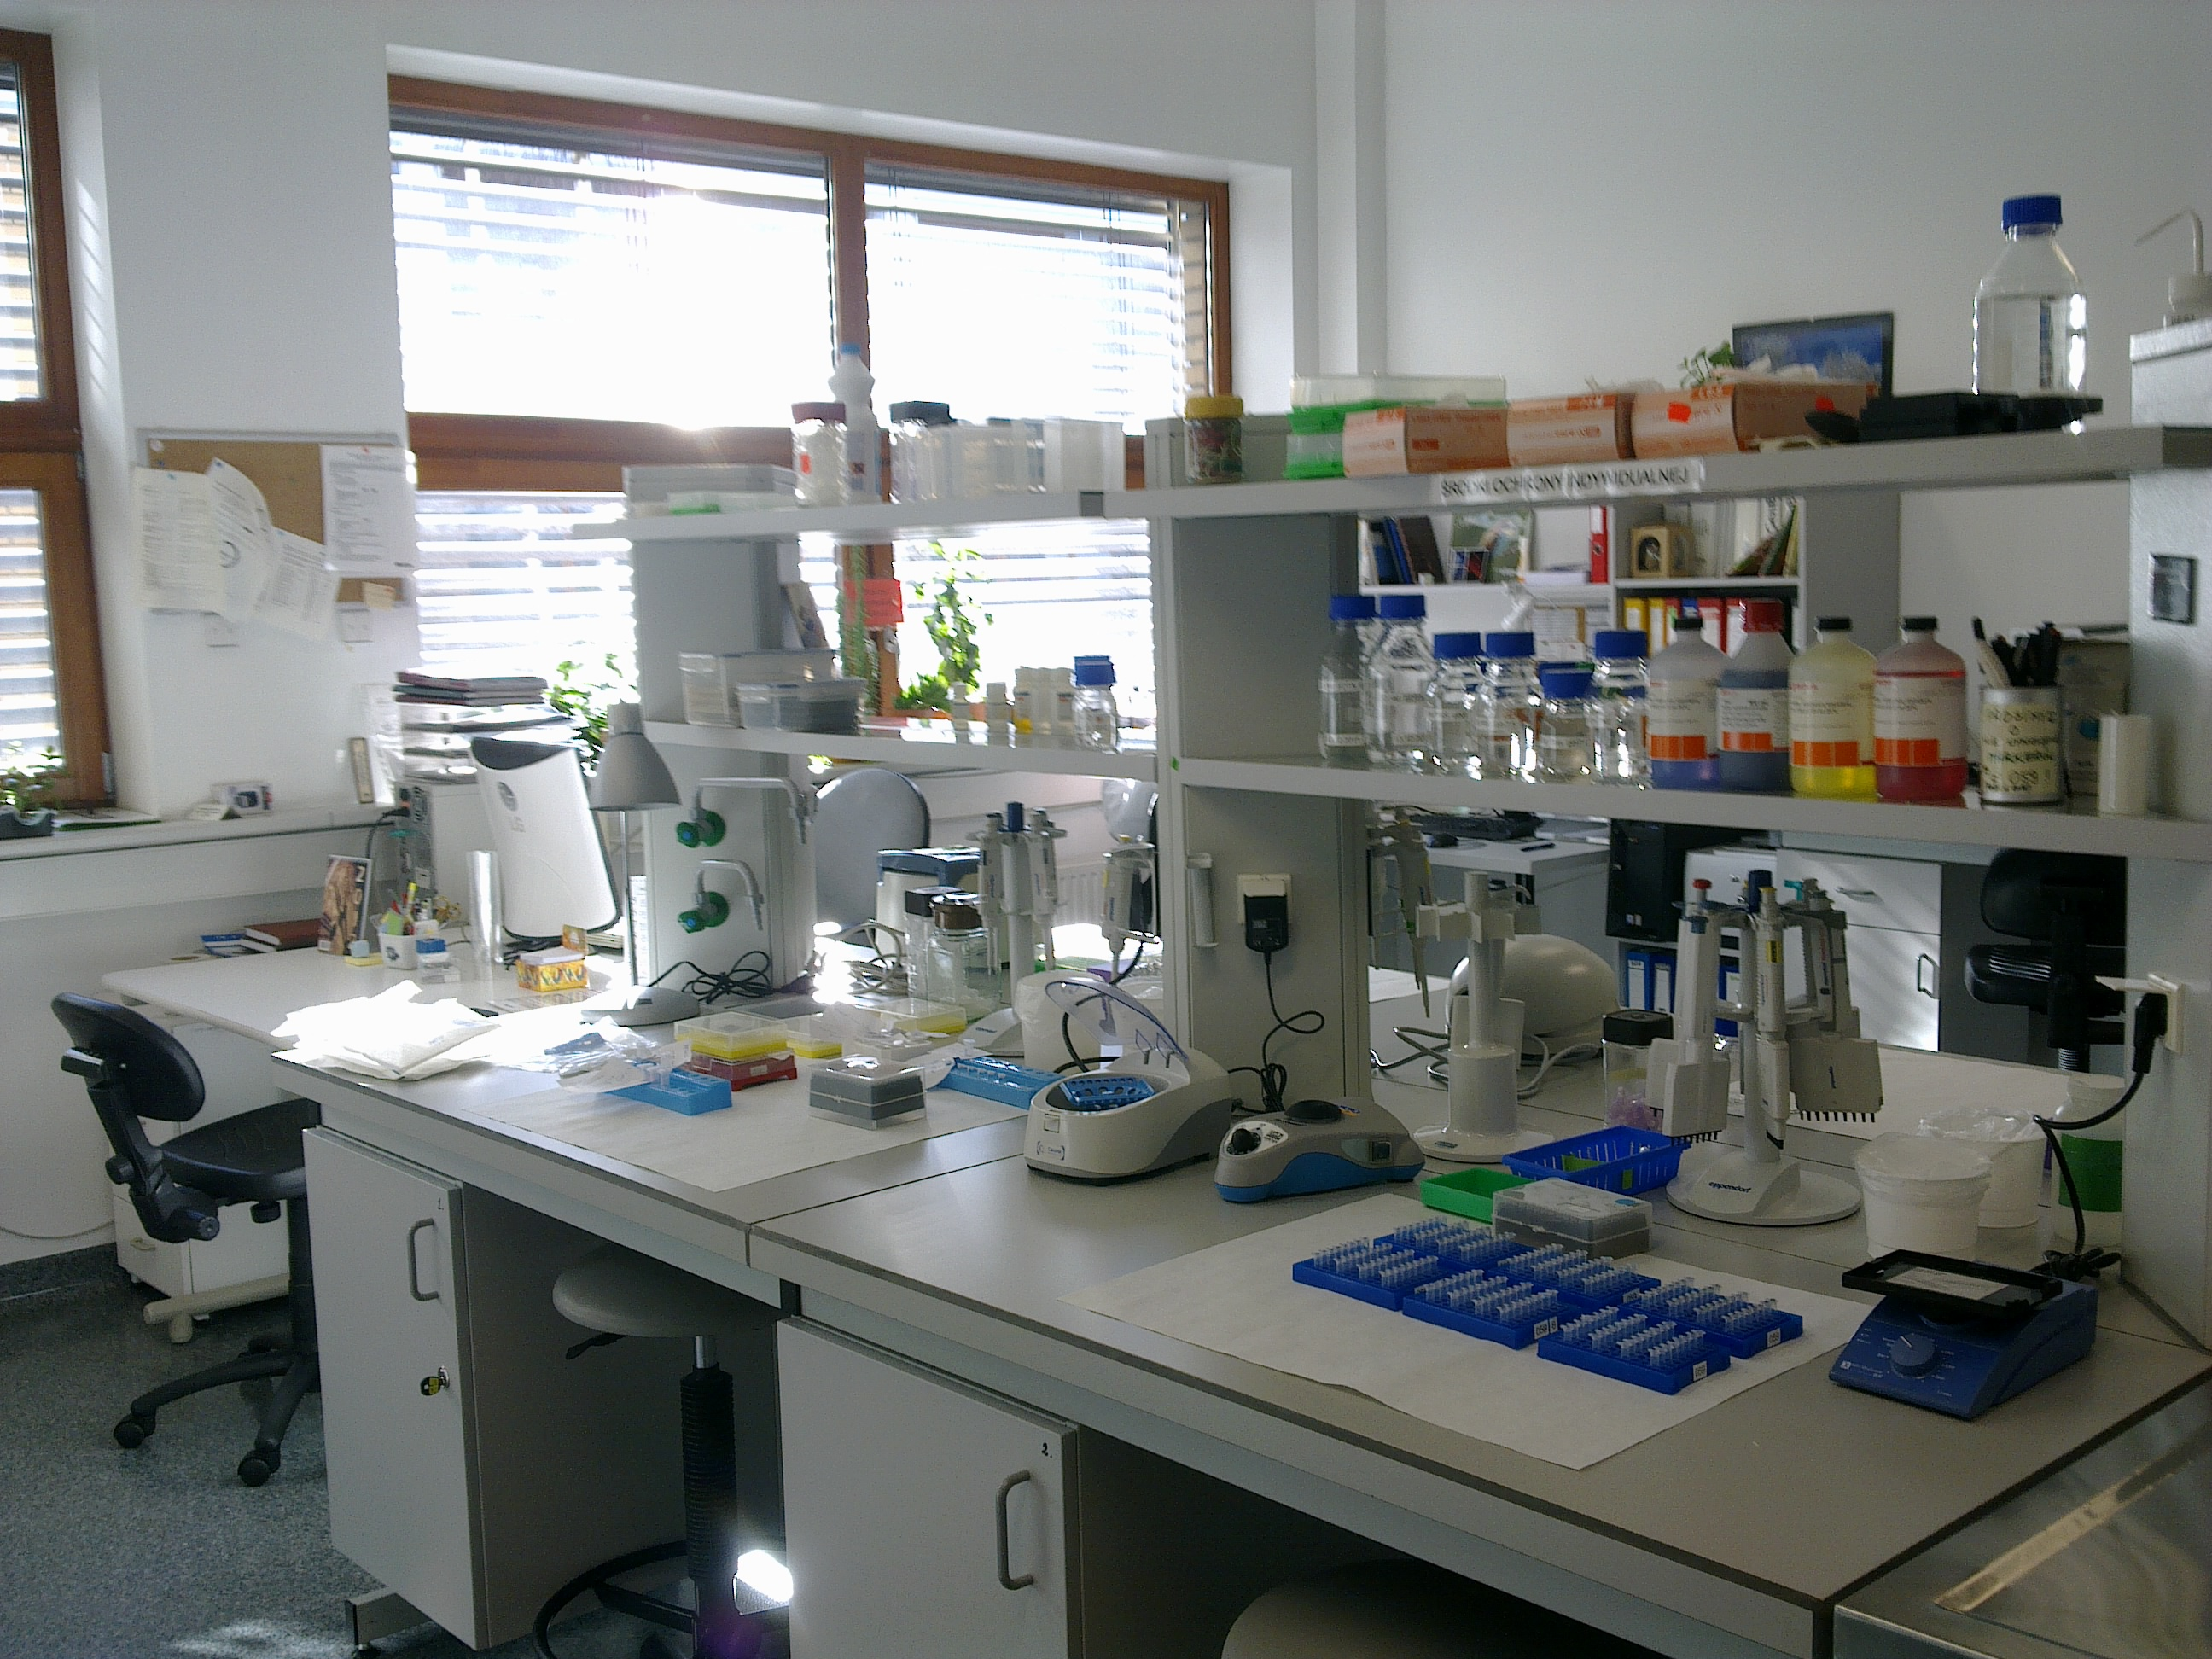 scientific lab Edulab provides scientific laboratory equipment and supplies for research and educational purposes to schools, universities, industrial labs and more.